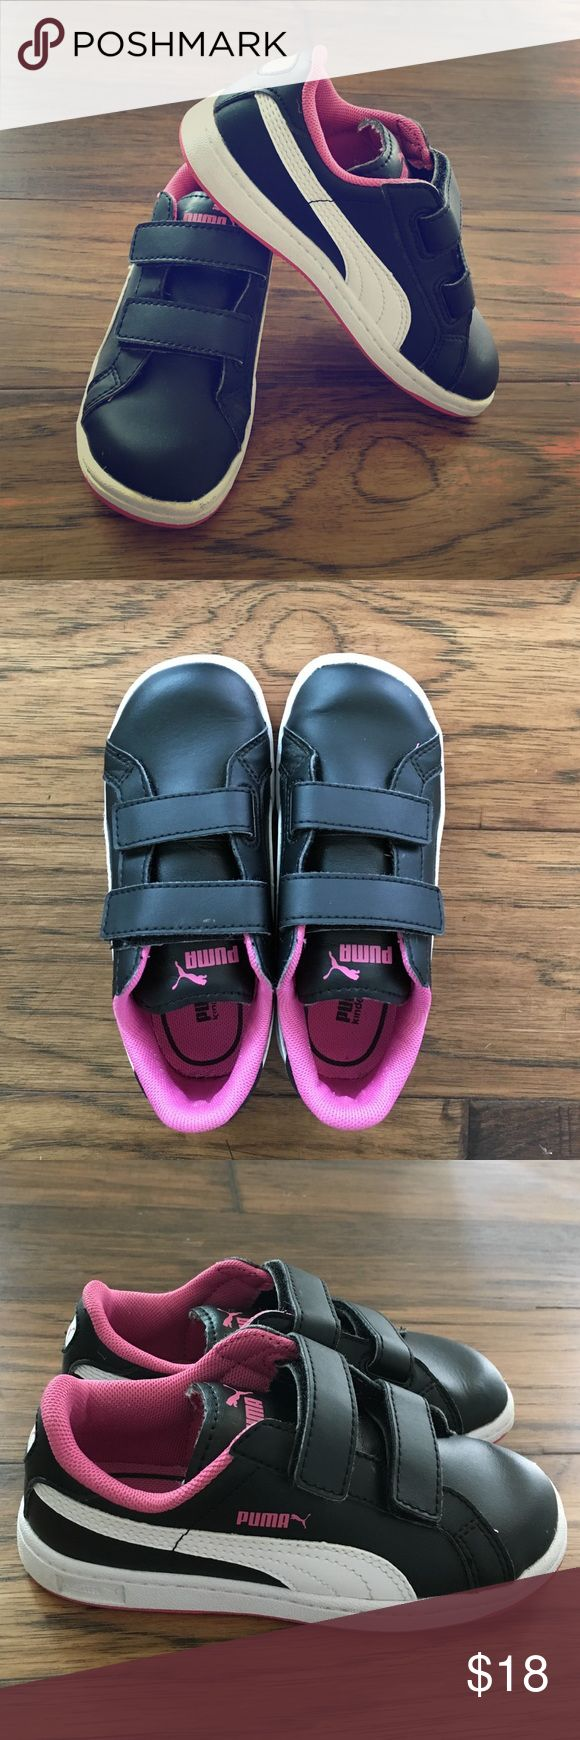 Puma girls Velcro sneakers Very gently used. Smoke free home. Puma Shoes Sneakers